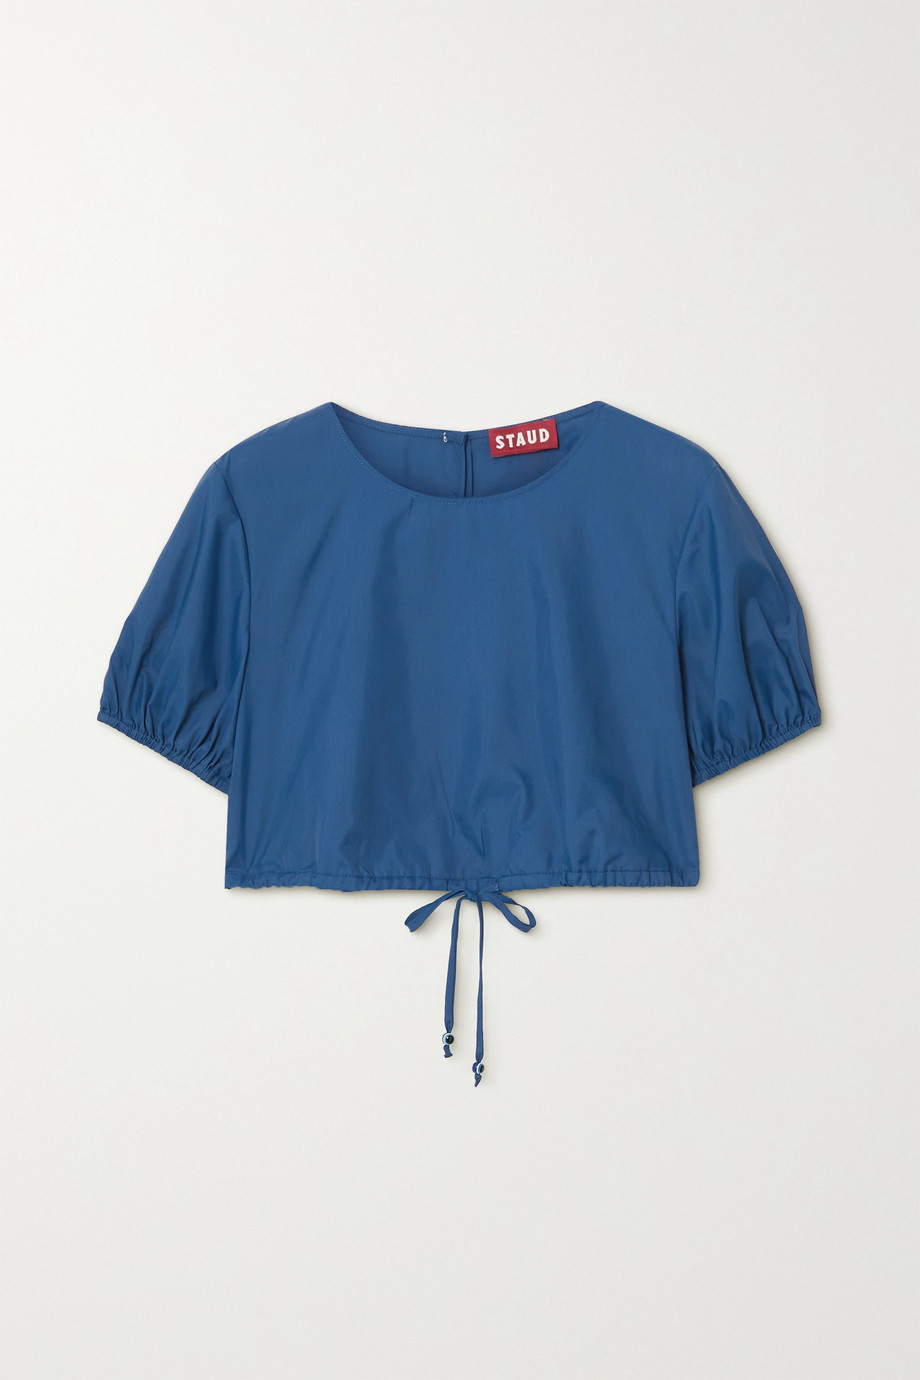 STAUD Prato cropped recycled shell top